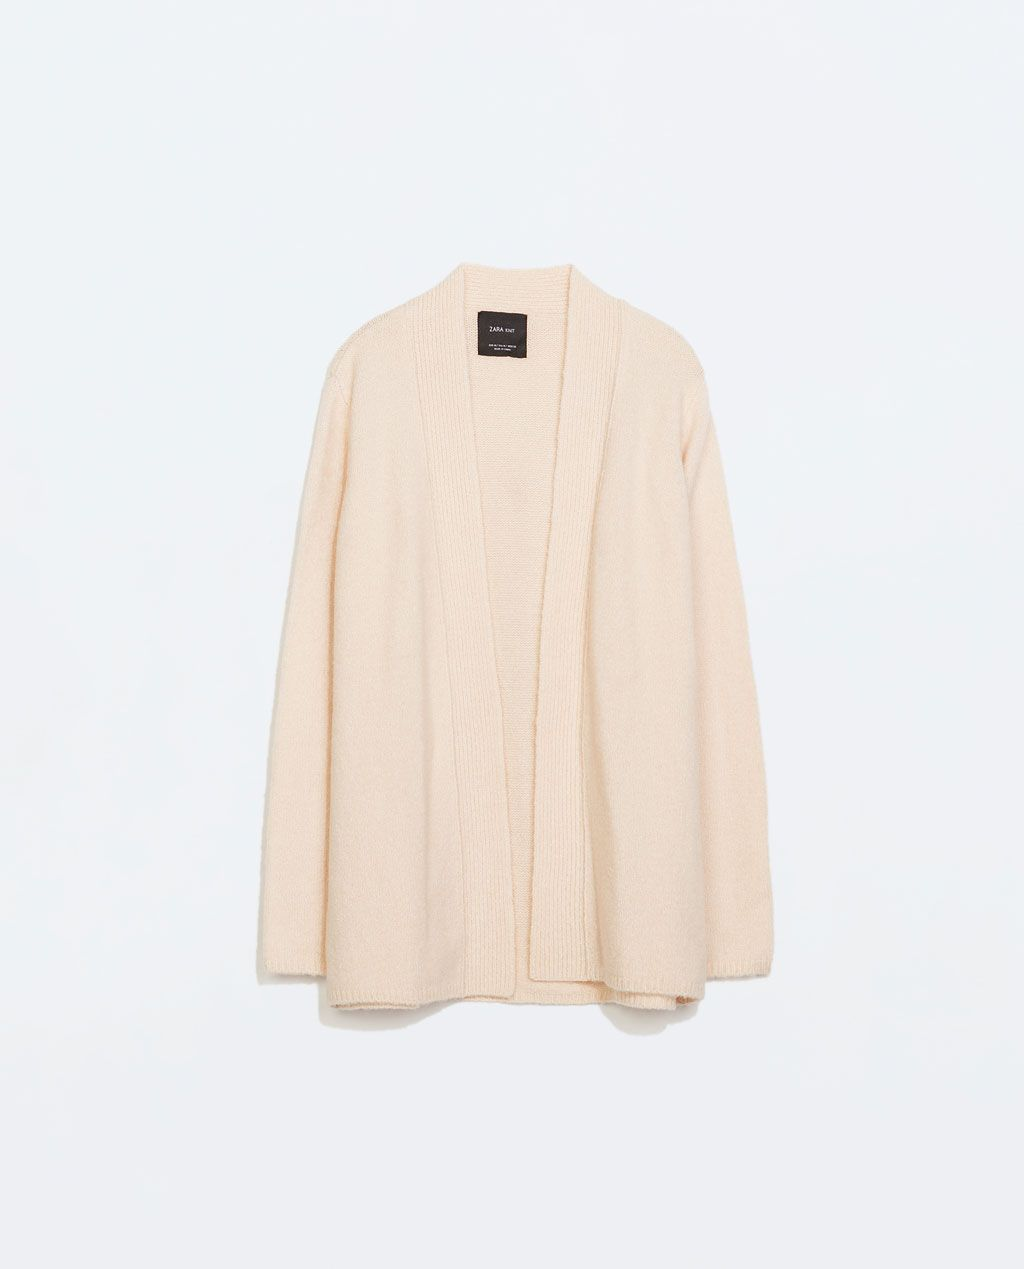 ZARA - NEW THIS WEEK - DRAPED CARDIGAN | Wish I Might | Pinterest ...